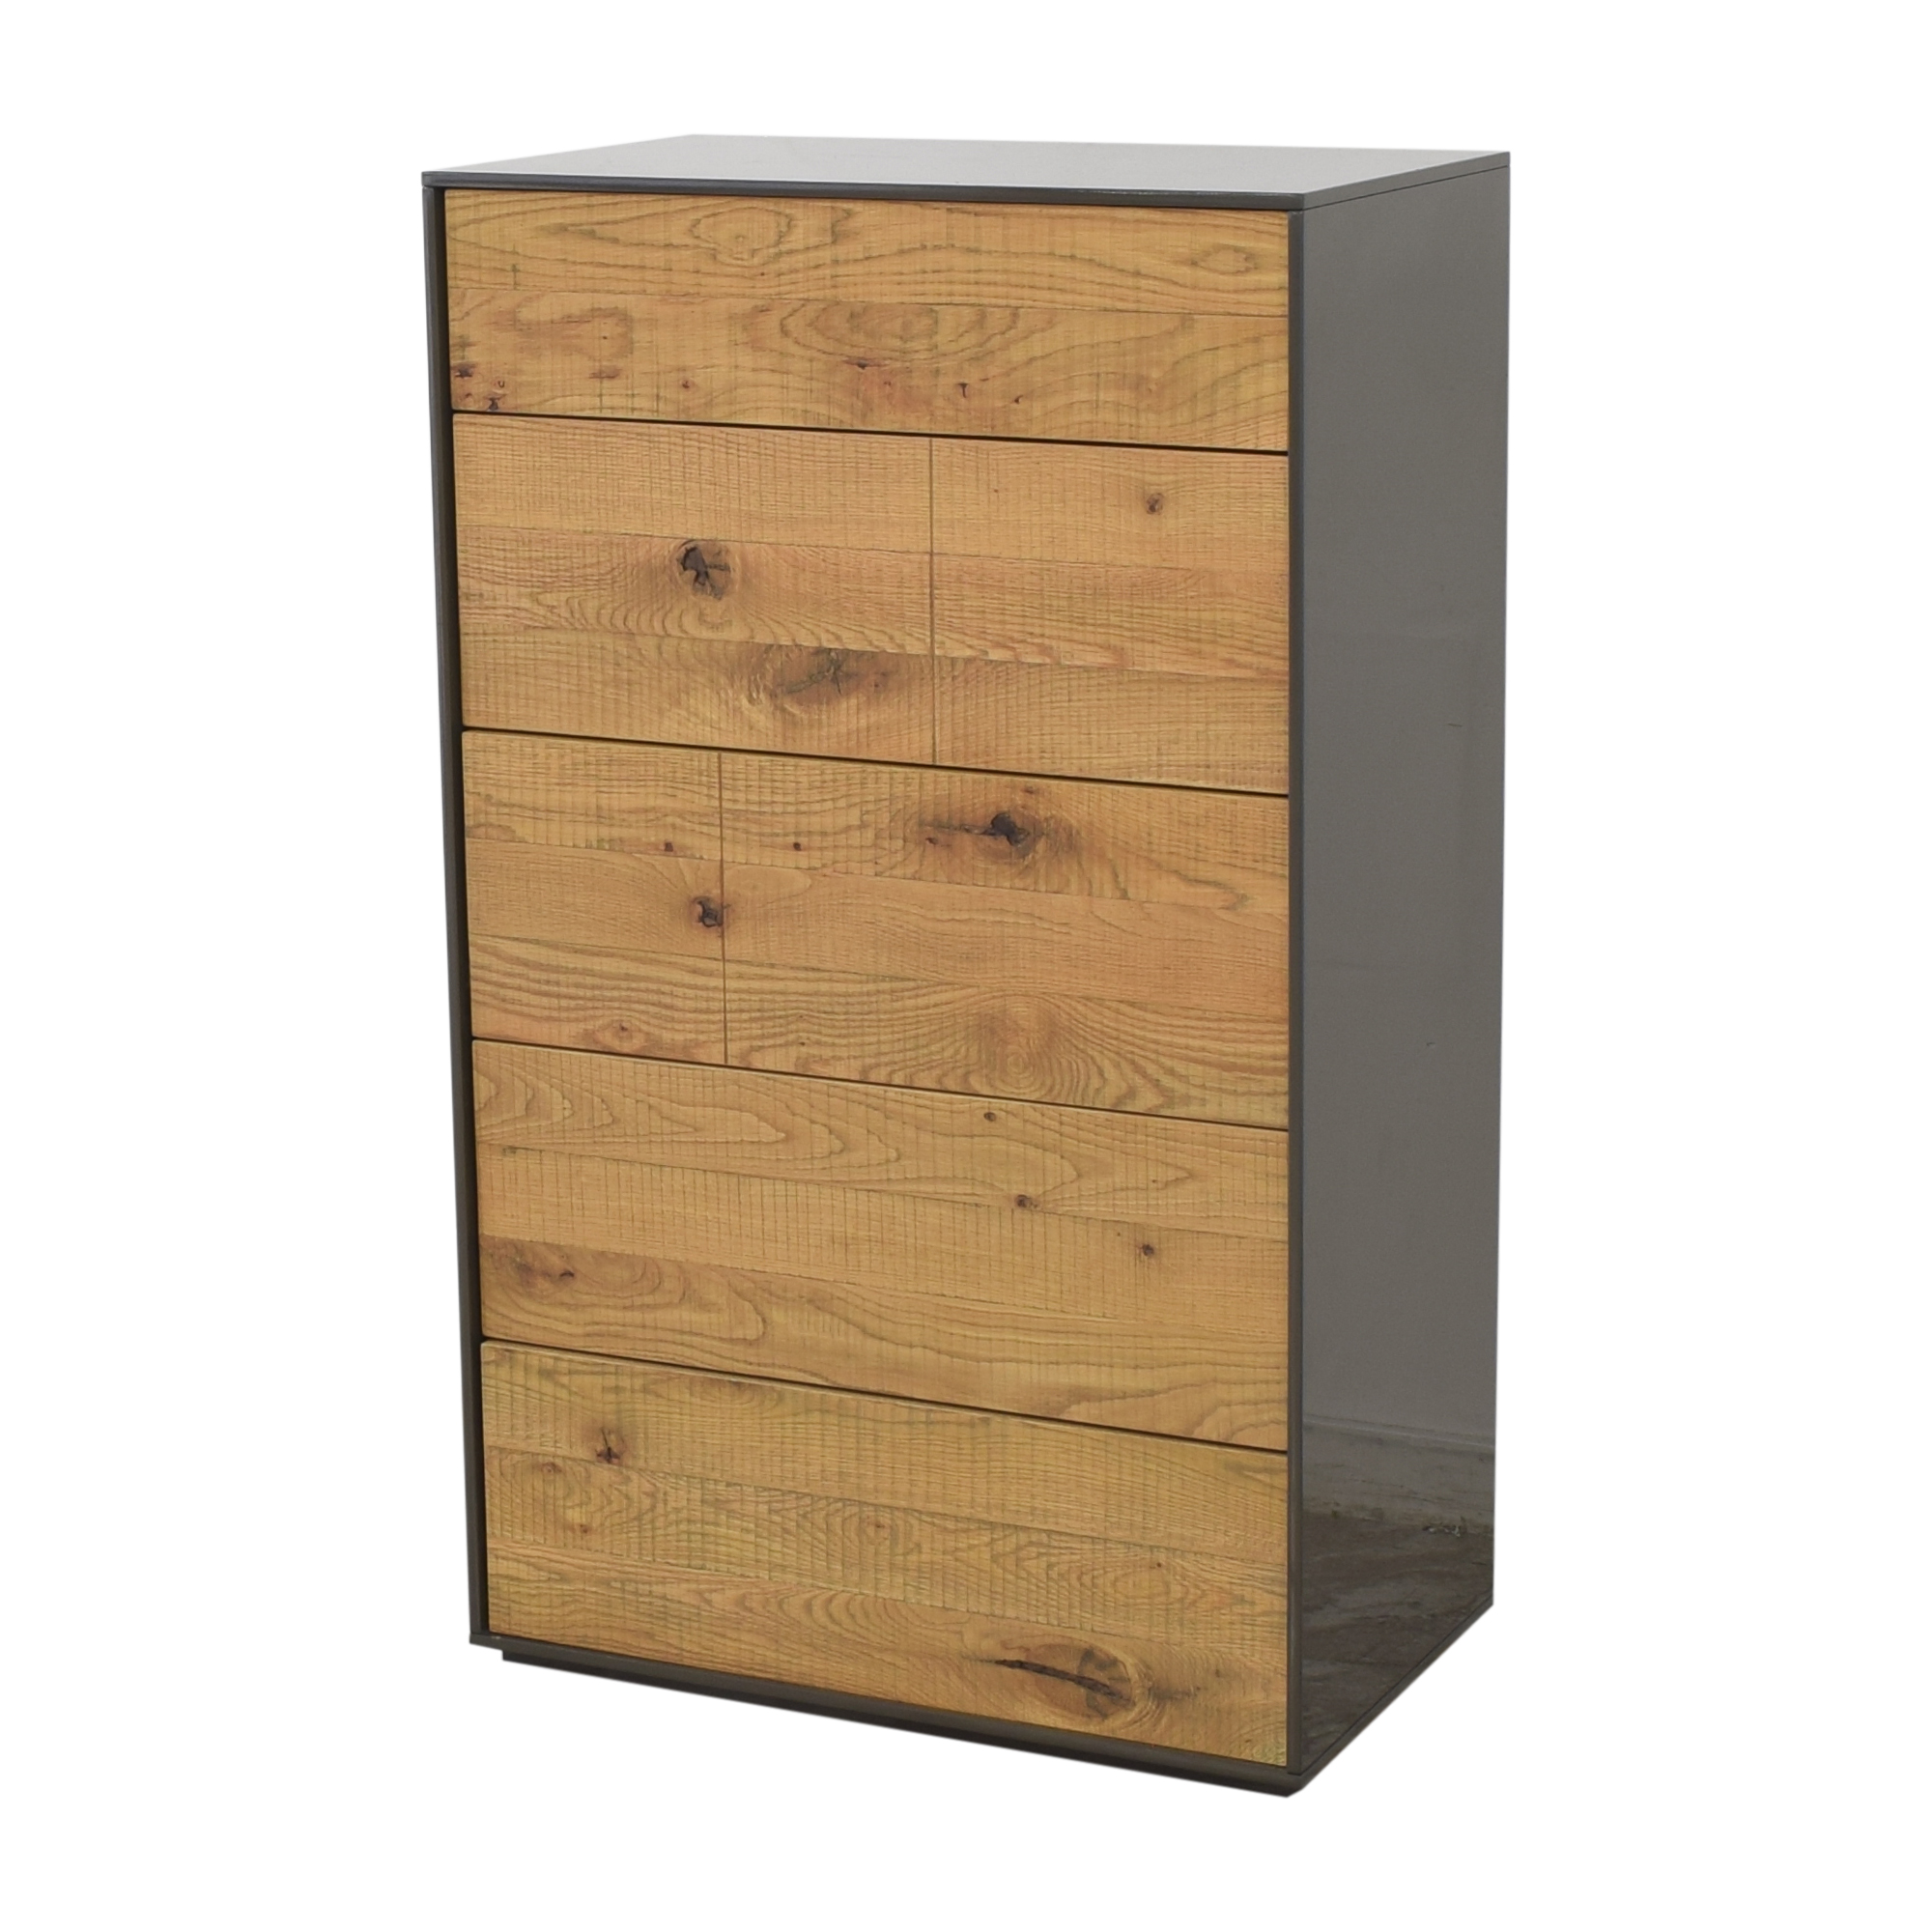 Crate & Barrel Crate & Barrel Cas Five Drawer Modern Rustic Chest